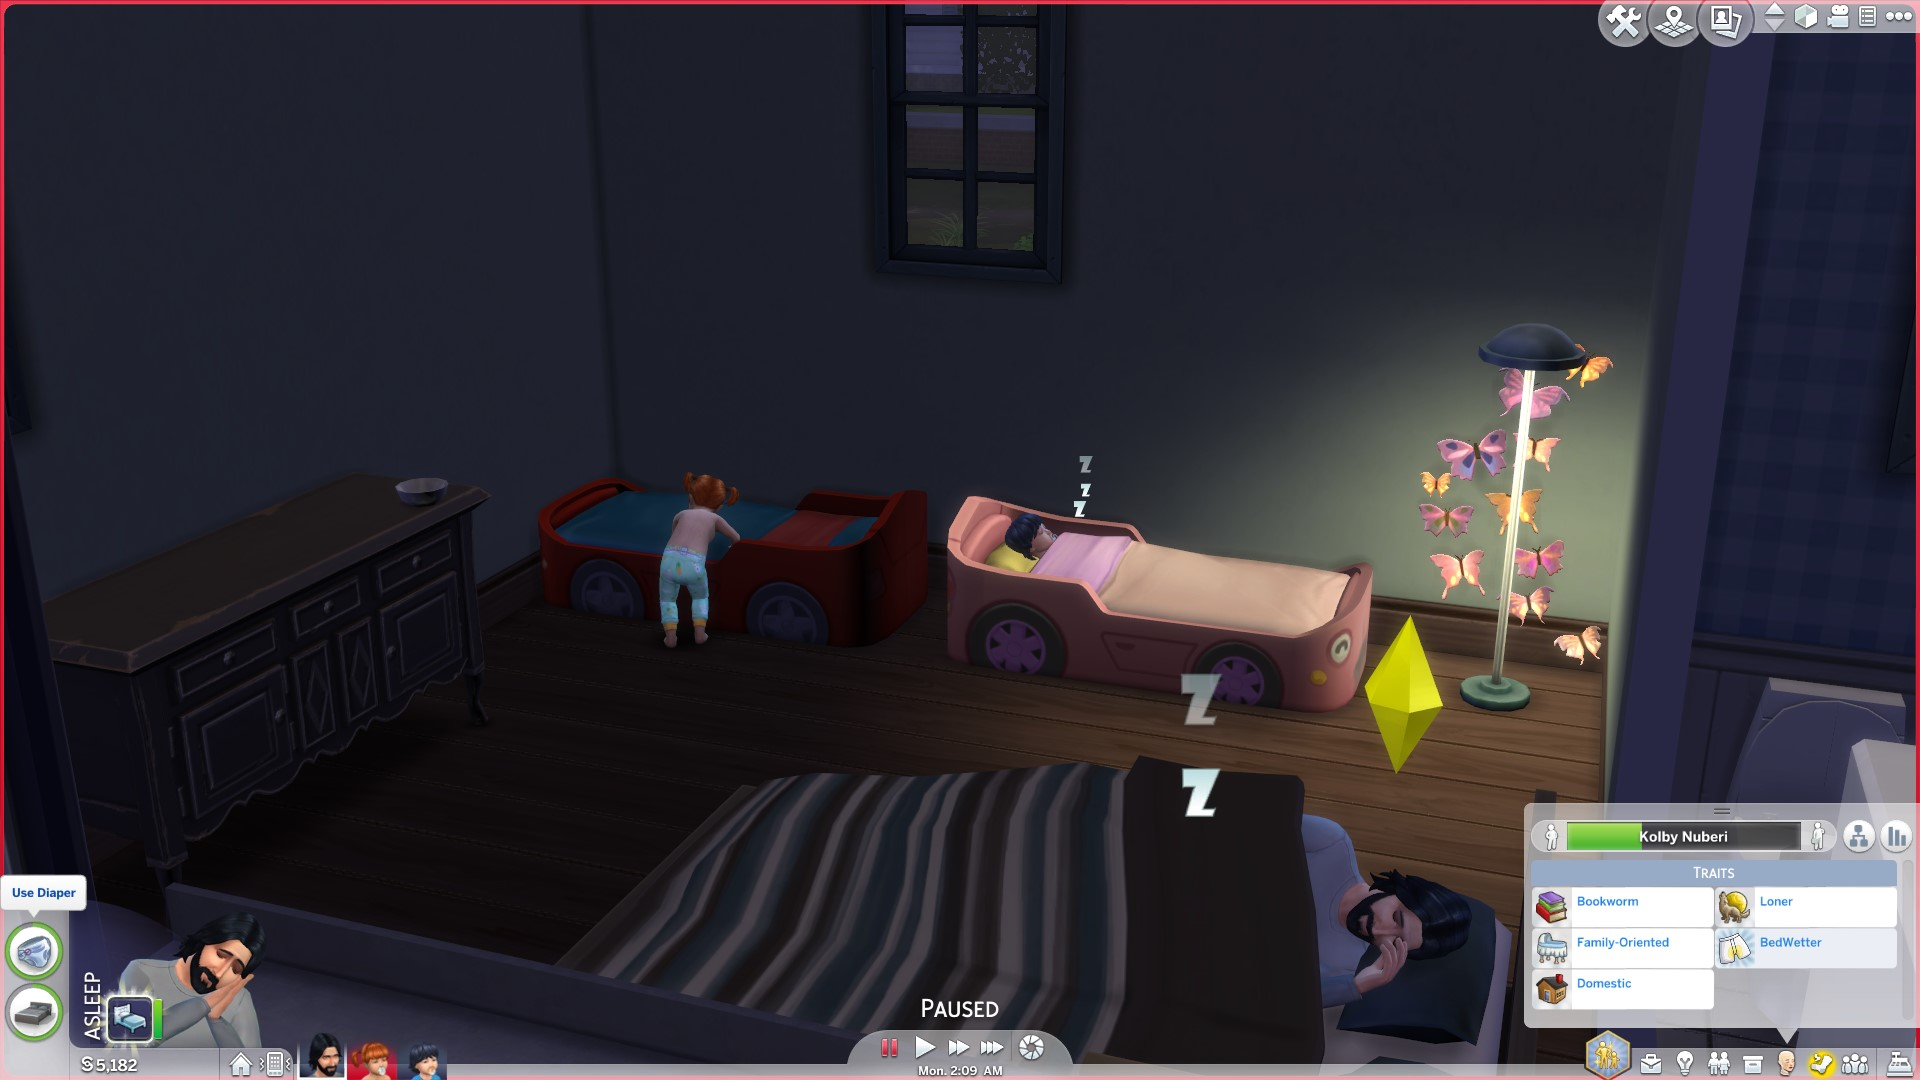 Mod The Sims - Bedwetting for everyone (Pets ready)